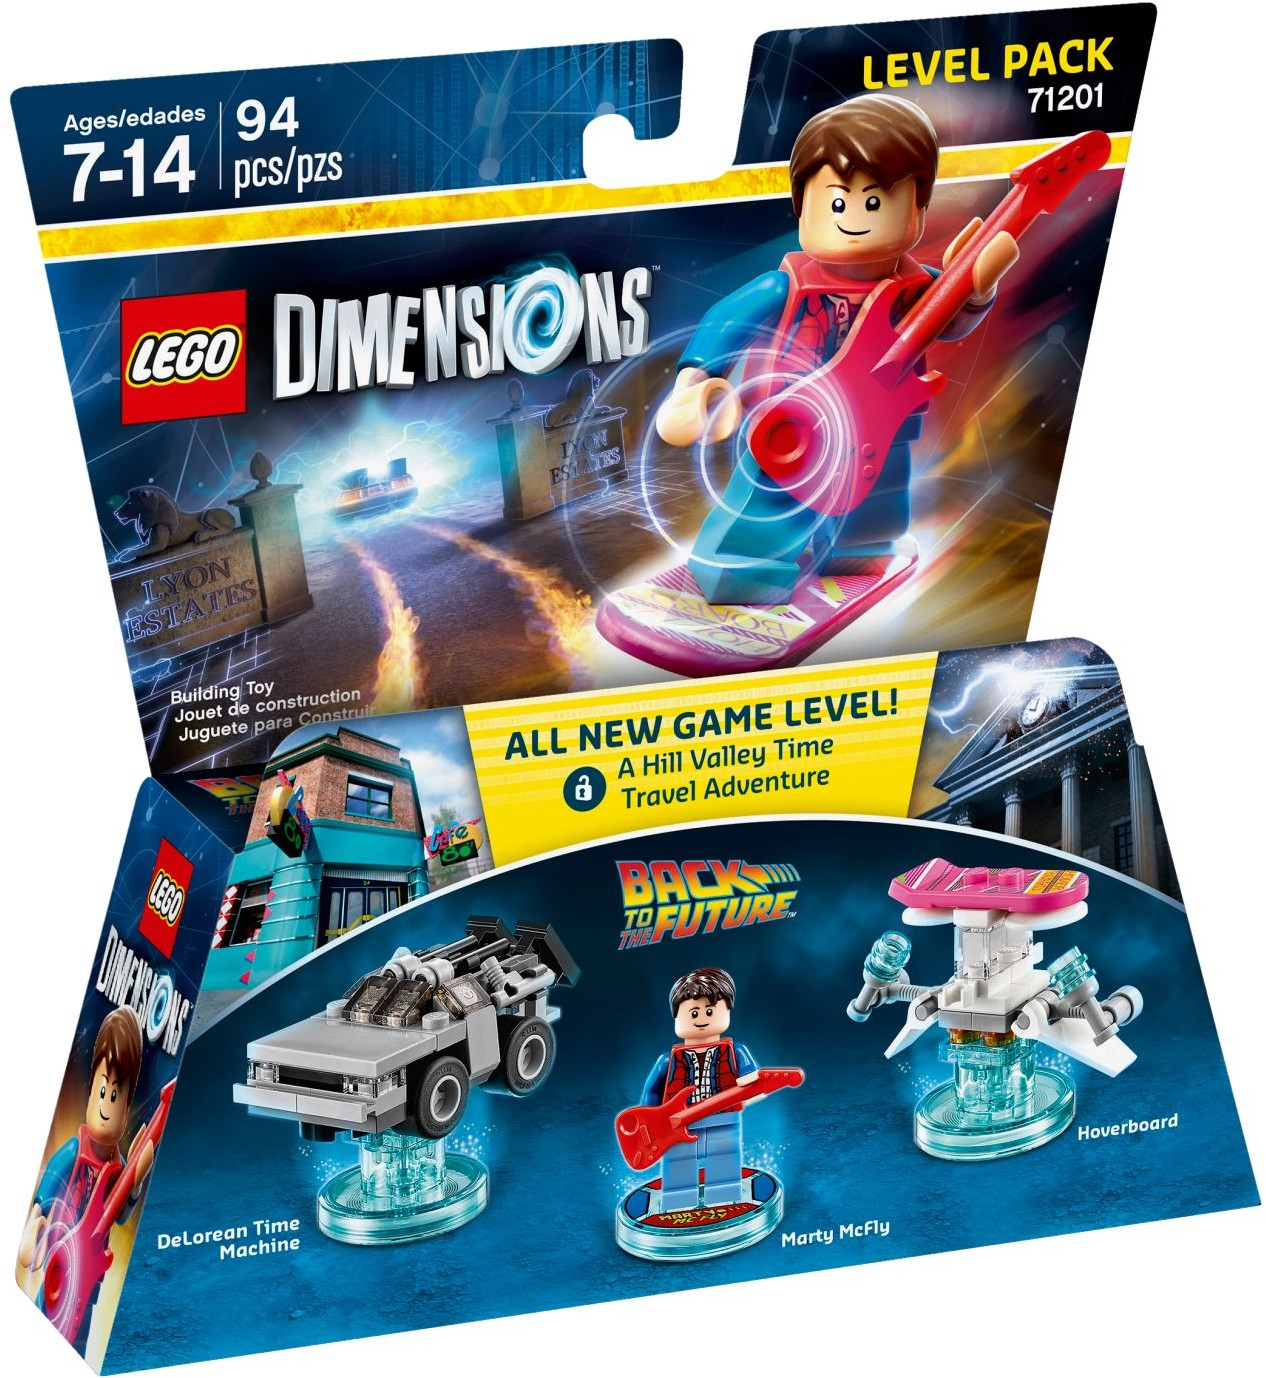 LEGO 71201 - Dimensions - Level Pack: Back To The Future